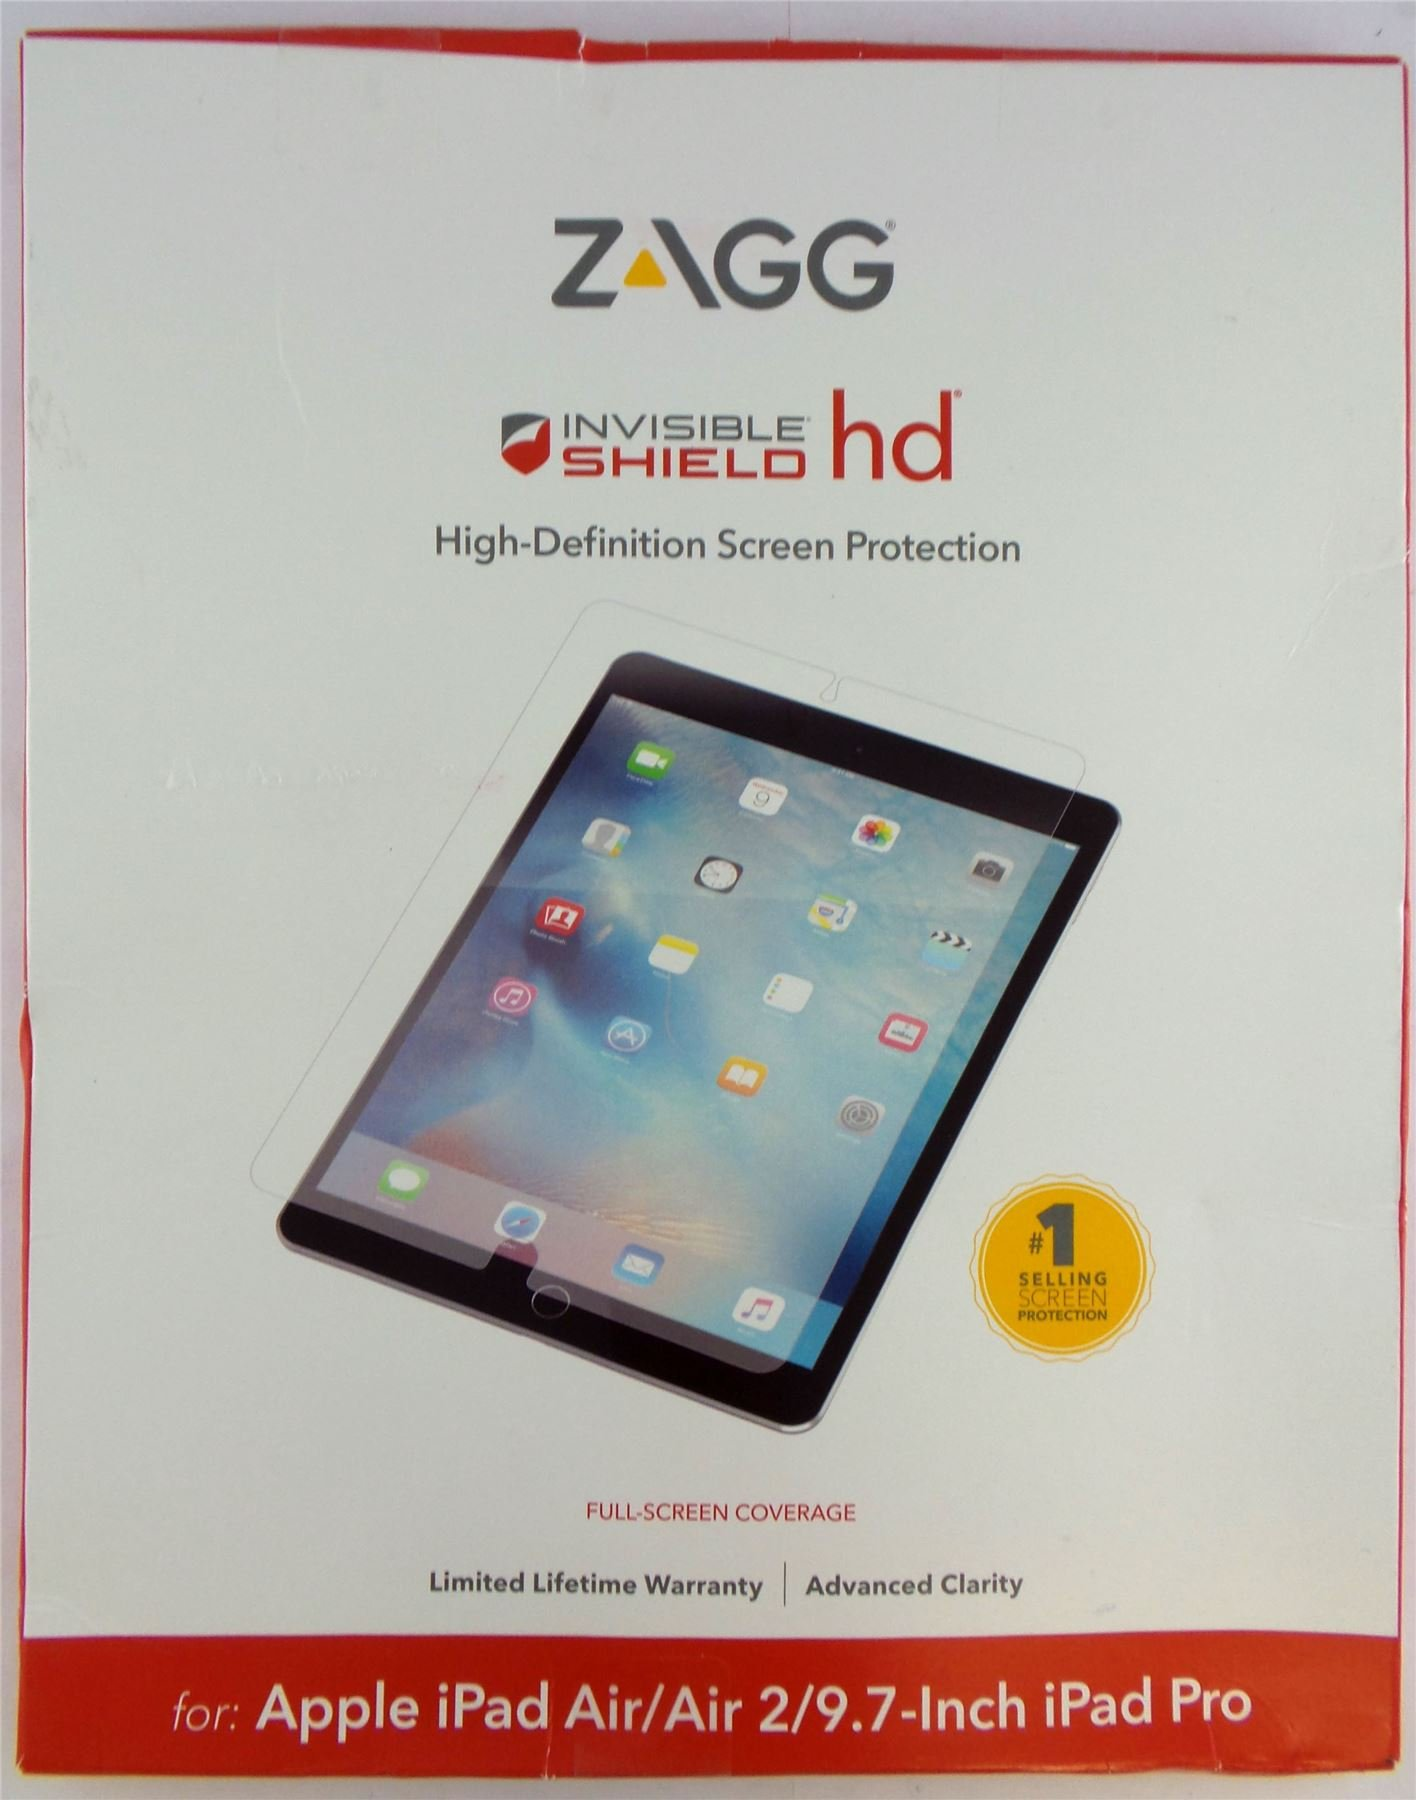 Zagg InvisibleShield HD Screen Protector for Apple iPad Pro 9.7'', Air & Air 2